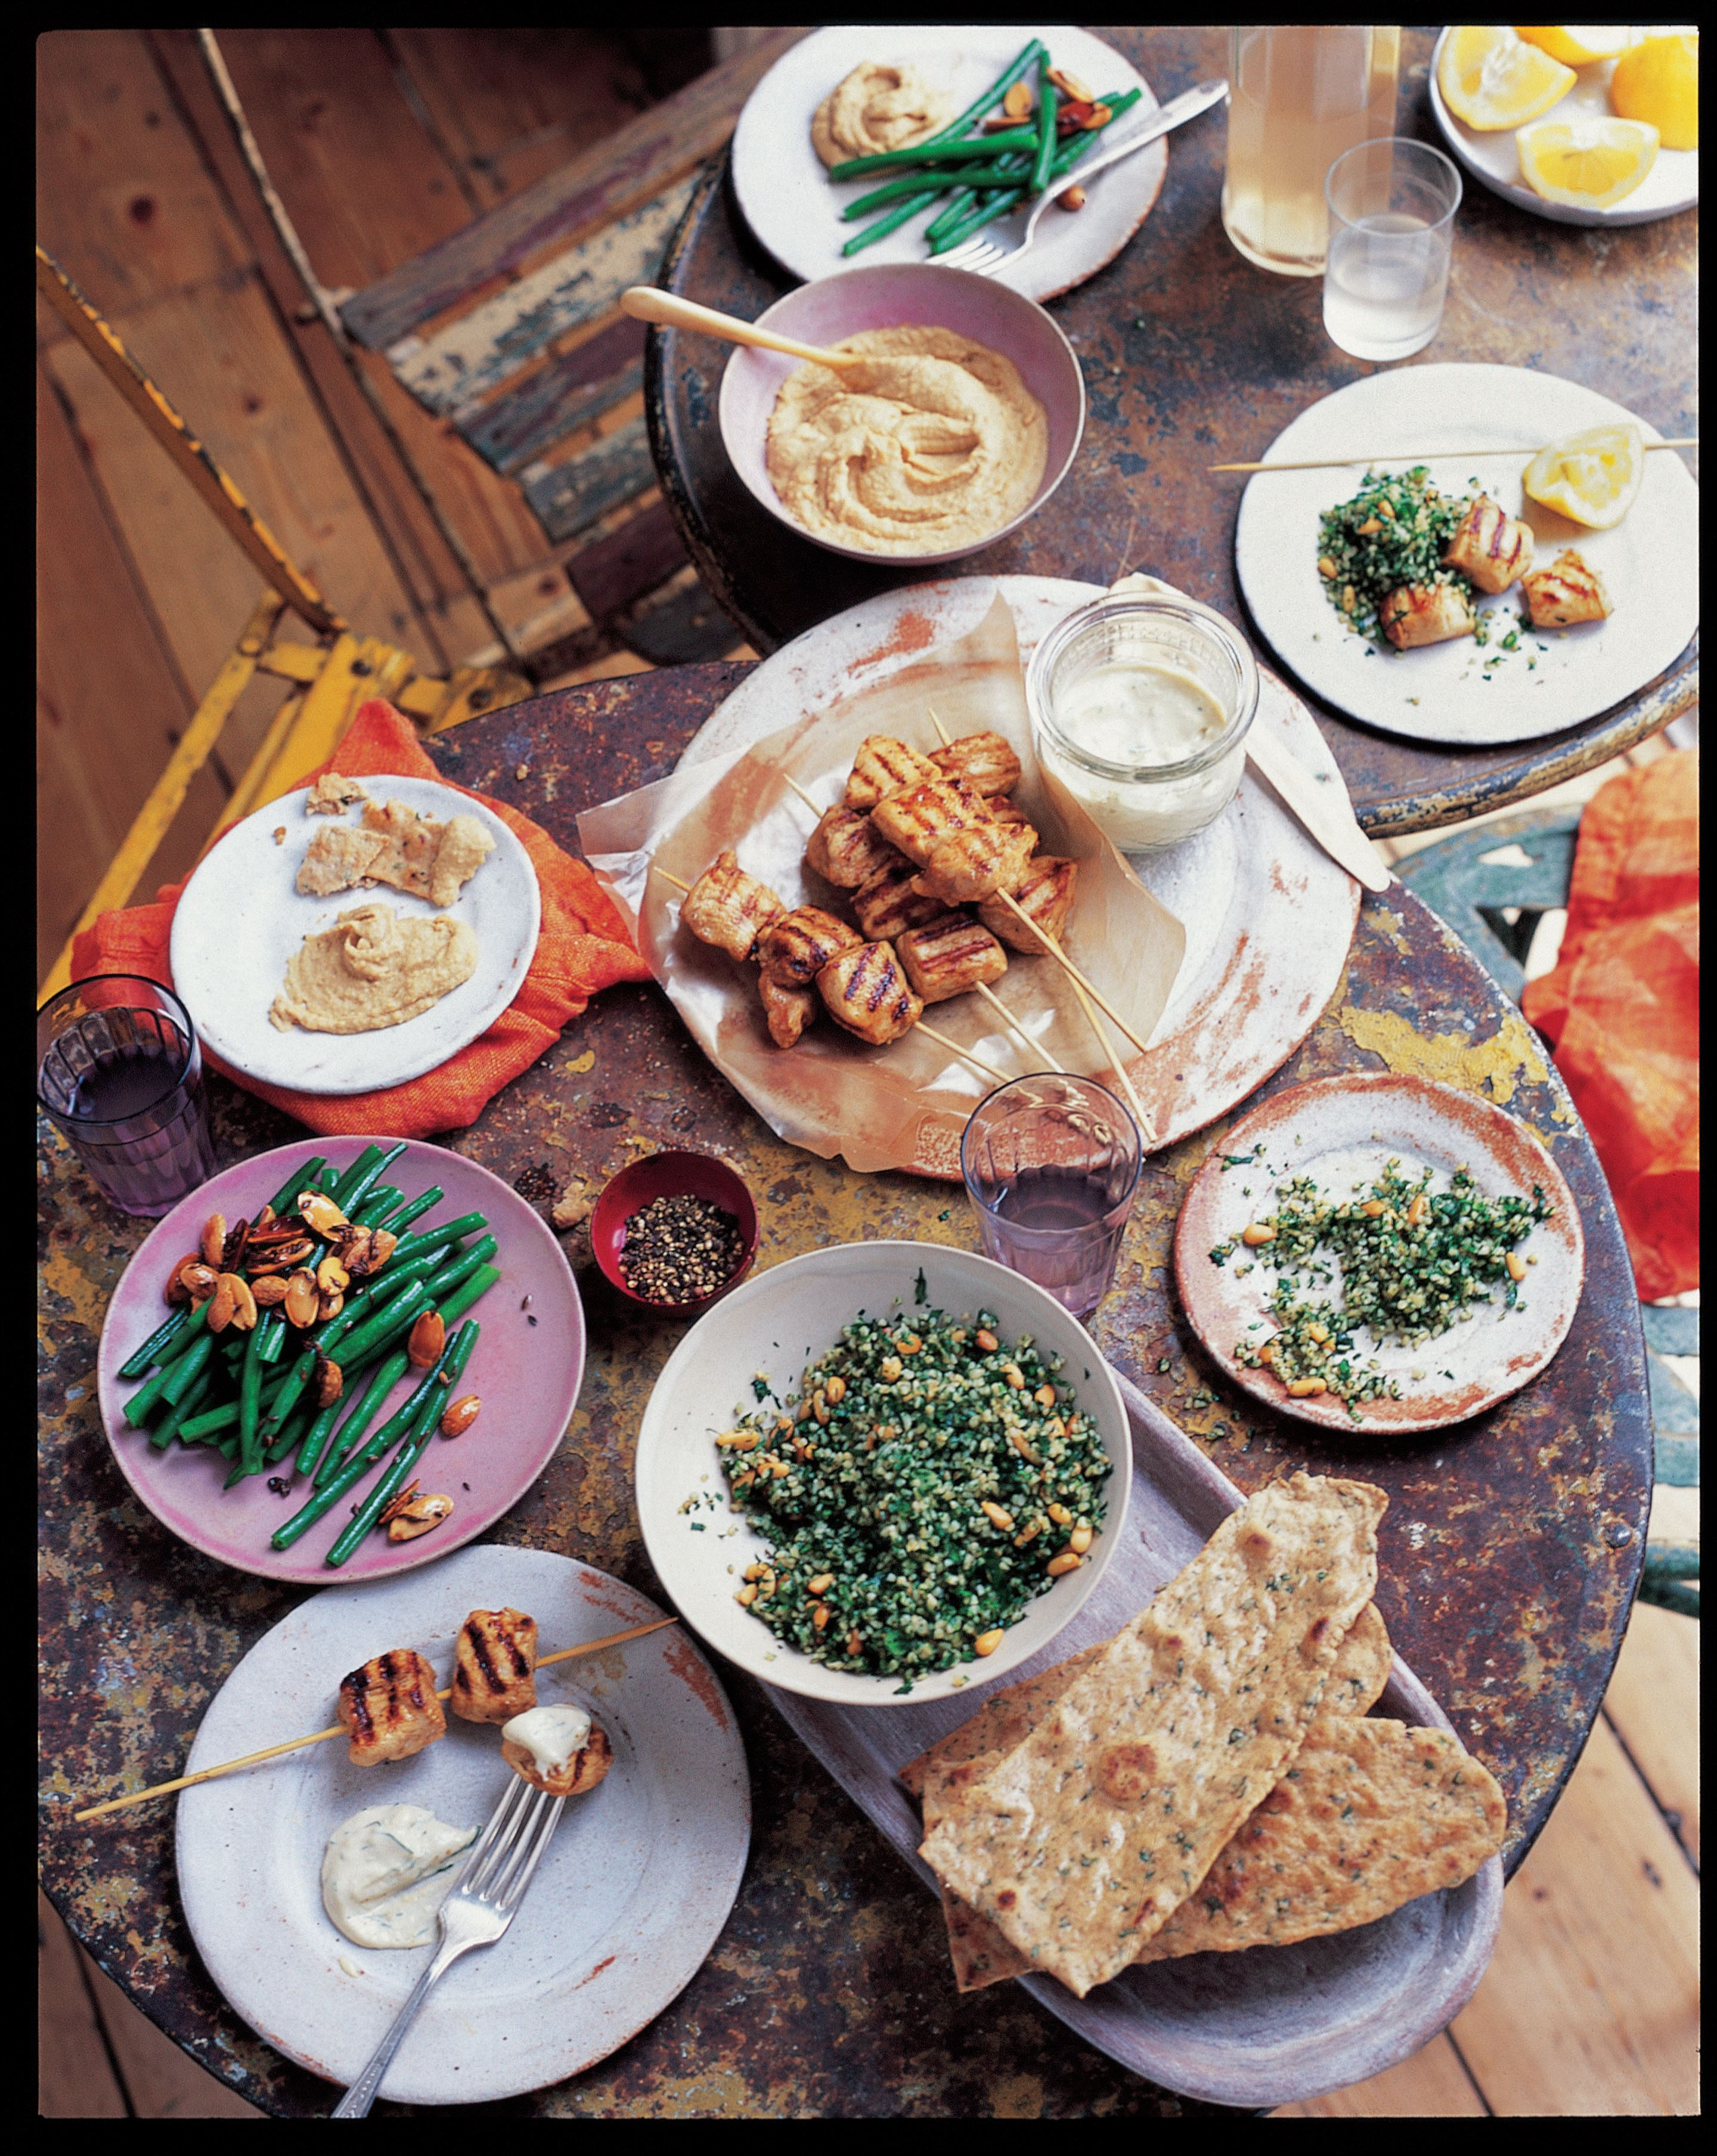 Middle Eastern mezze plate